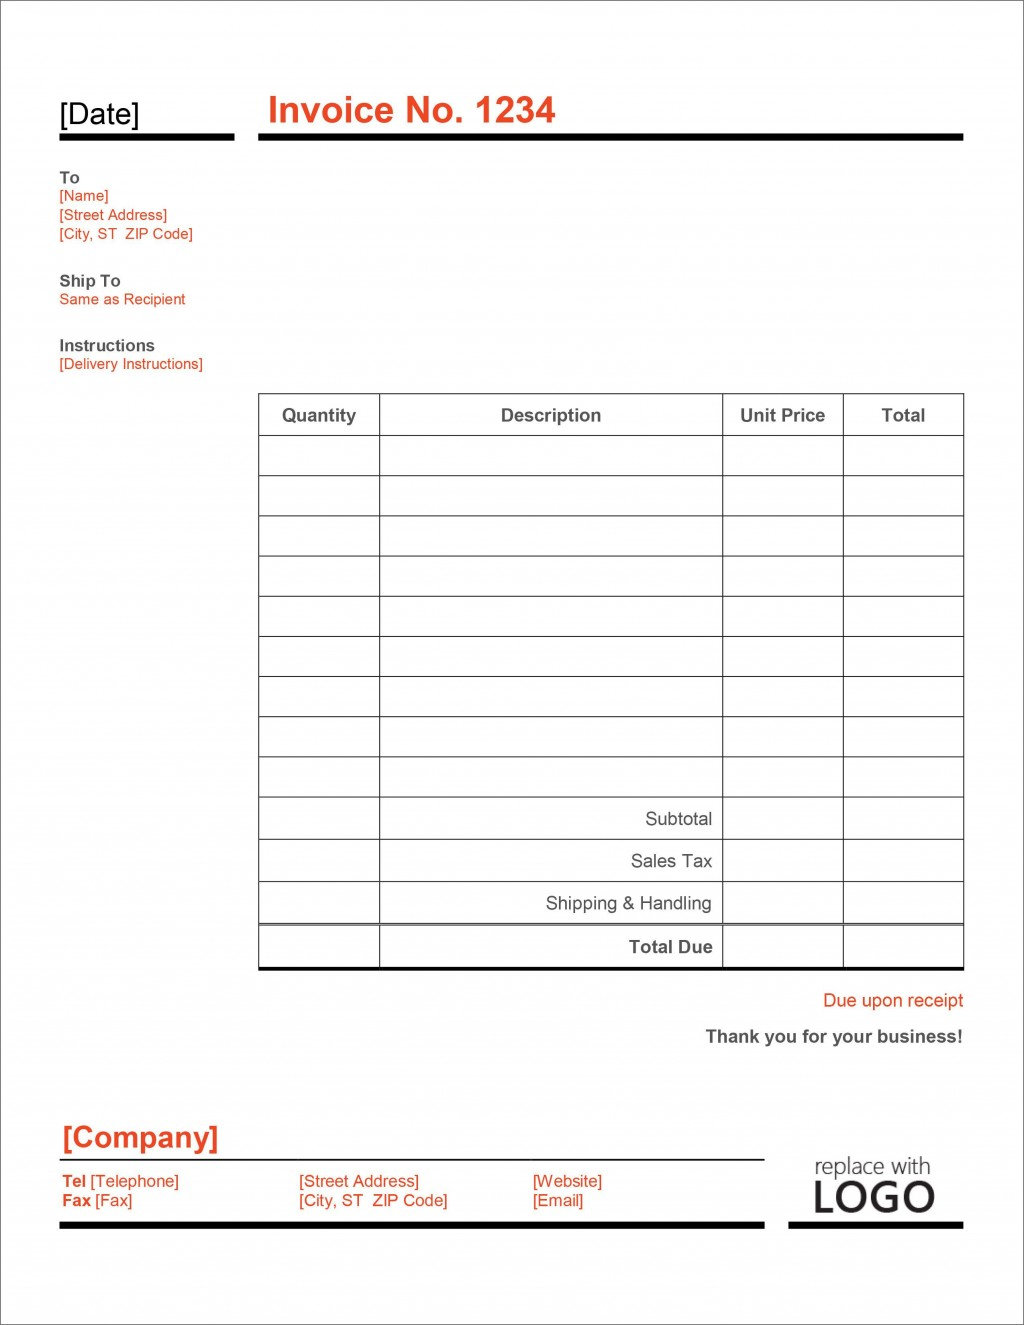 007 Striking Simple Invoice Template Excel Download Free Concept Large